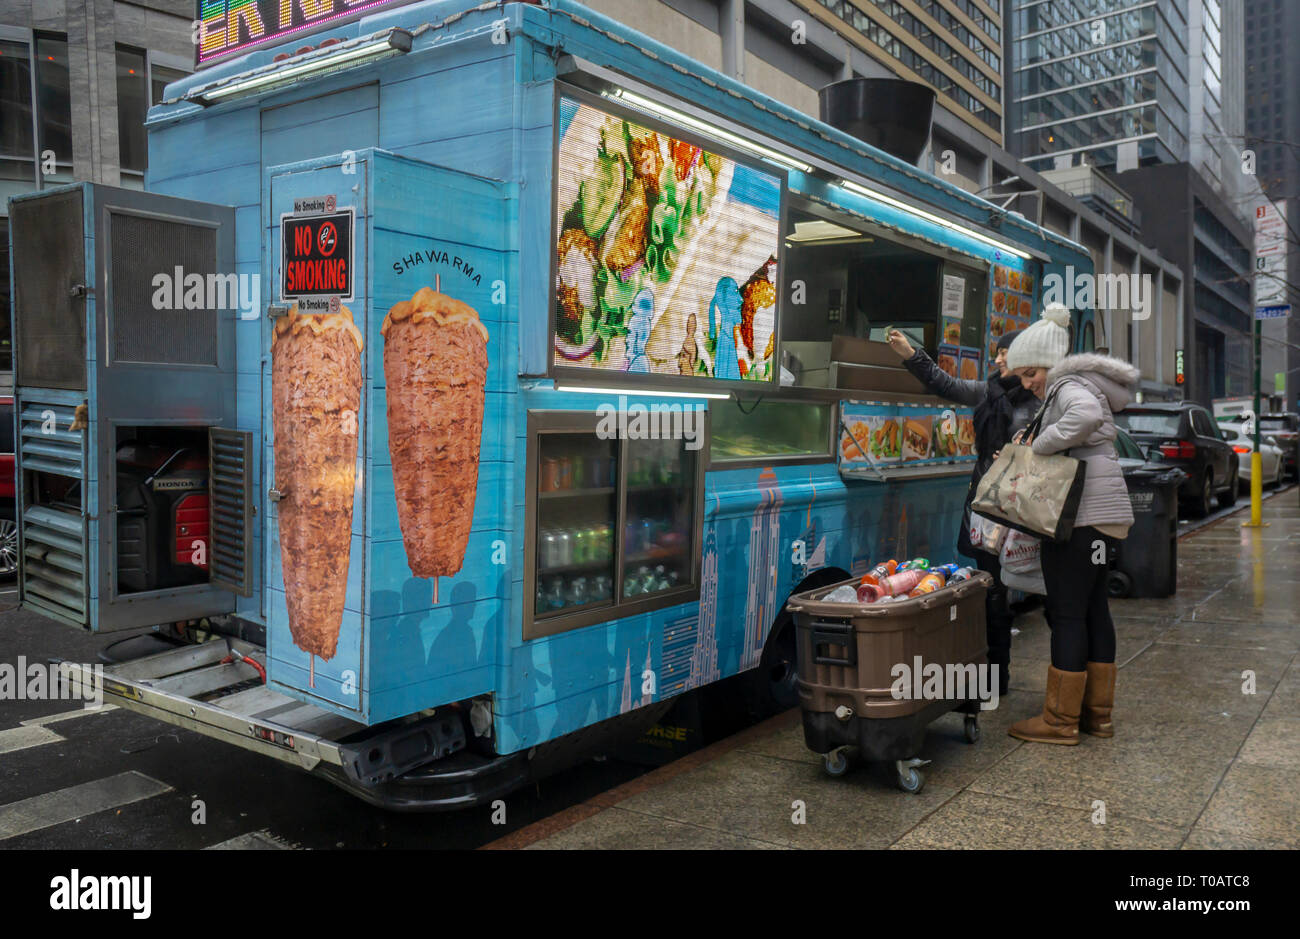 Food Truck Cucina Greca Food Truck Parked In New Immagini Food Truck Parked In New Fotos